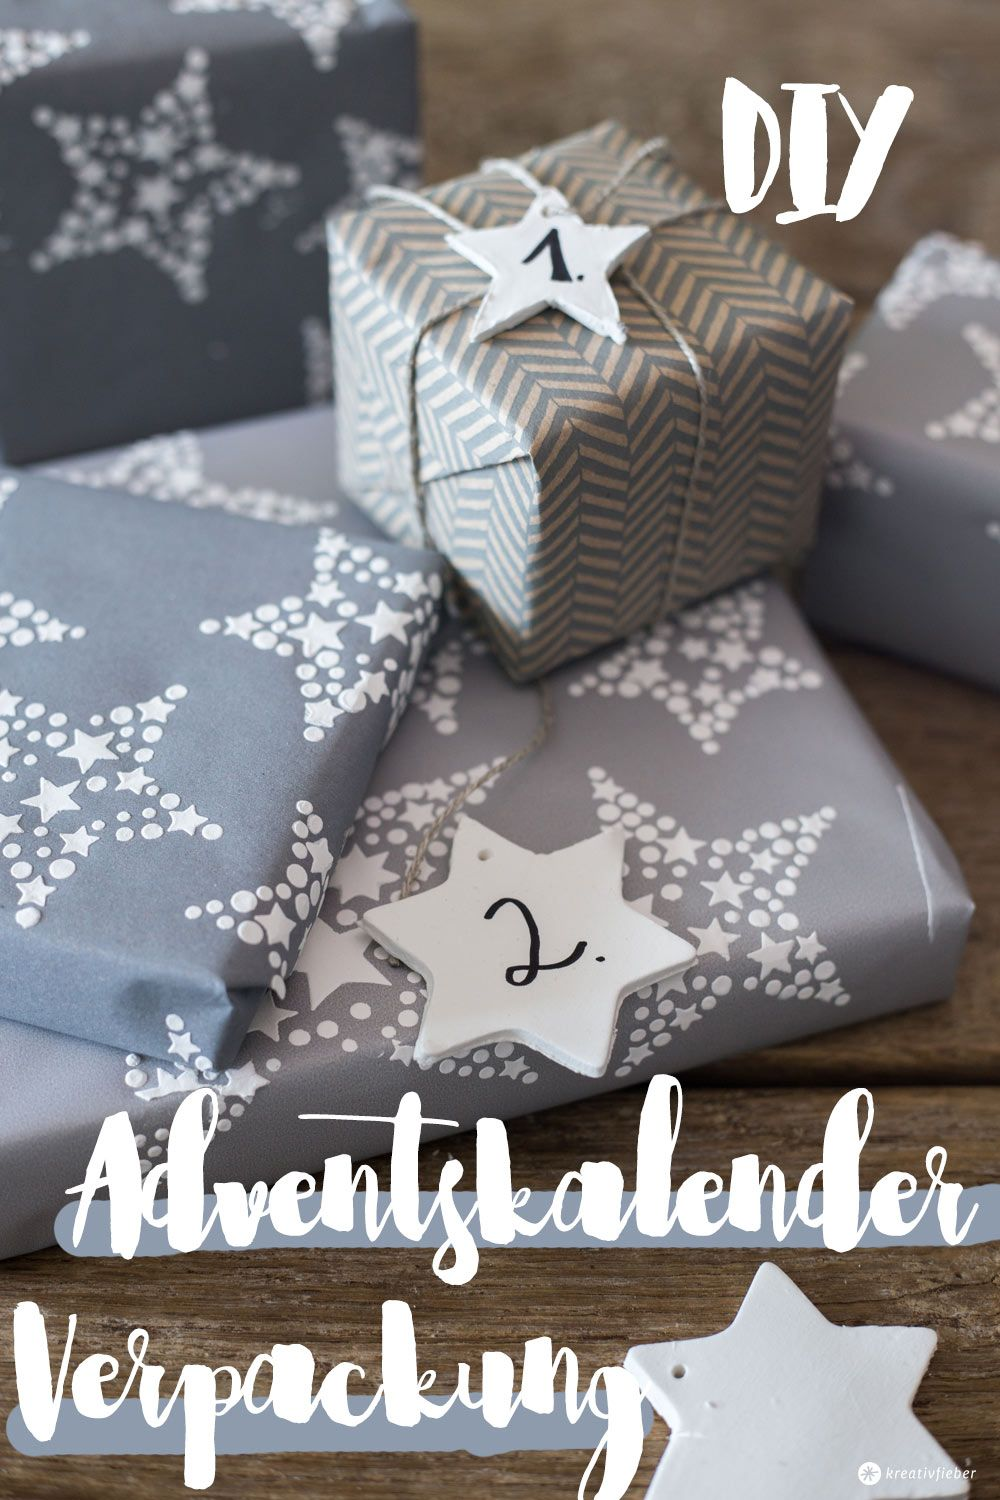 diy adventskalender verpackung papier upcycling. Black Bedroom Furniture Sets. Home Design Ideas